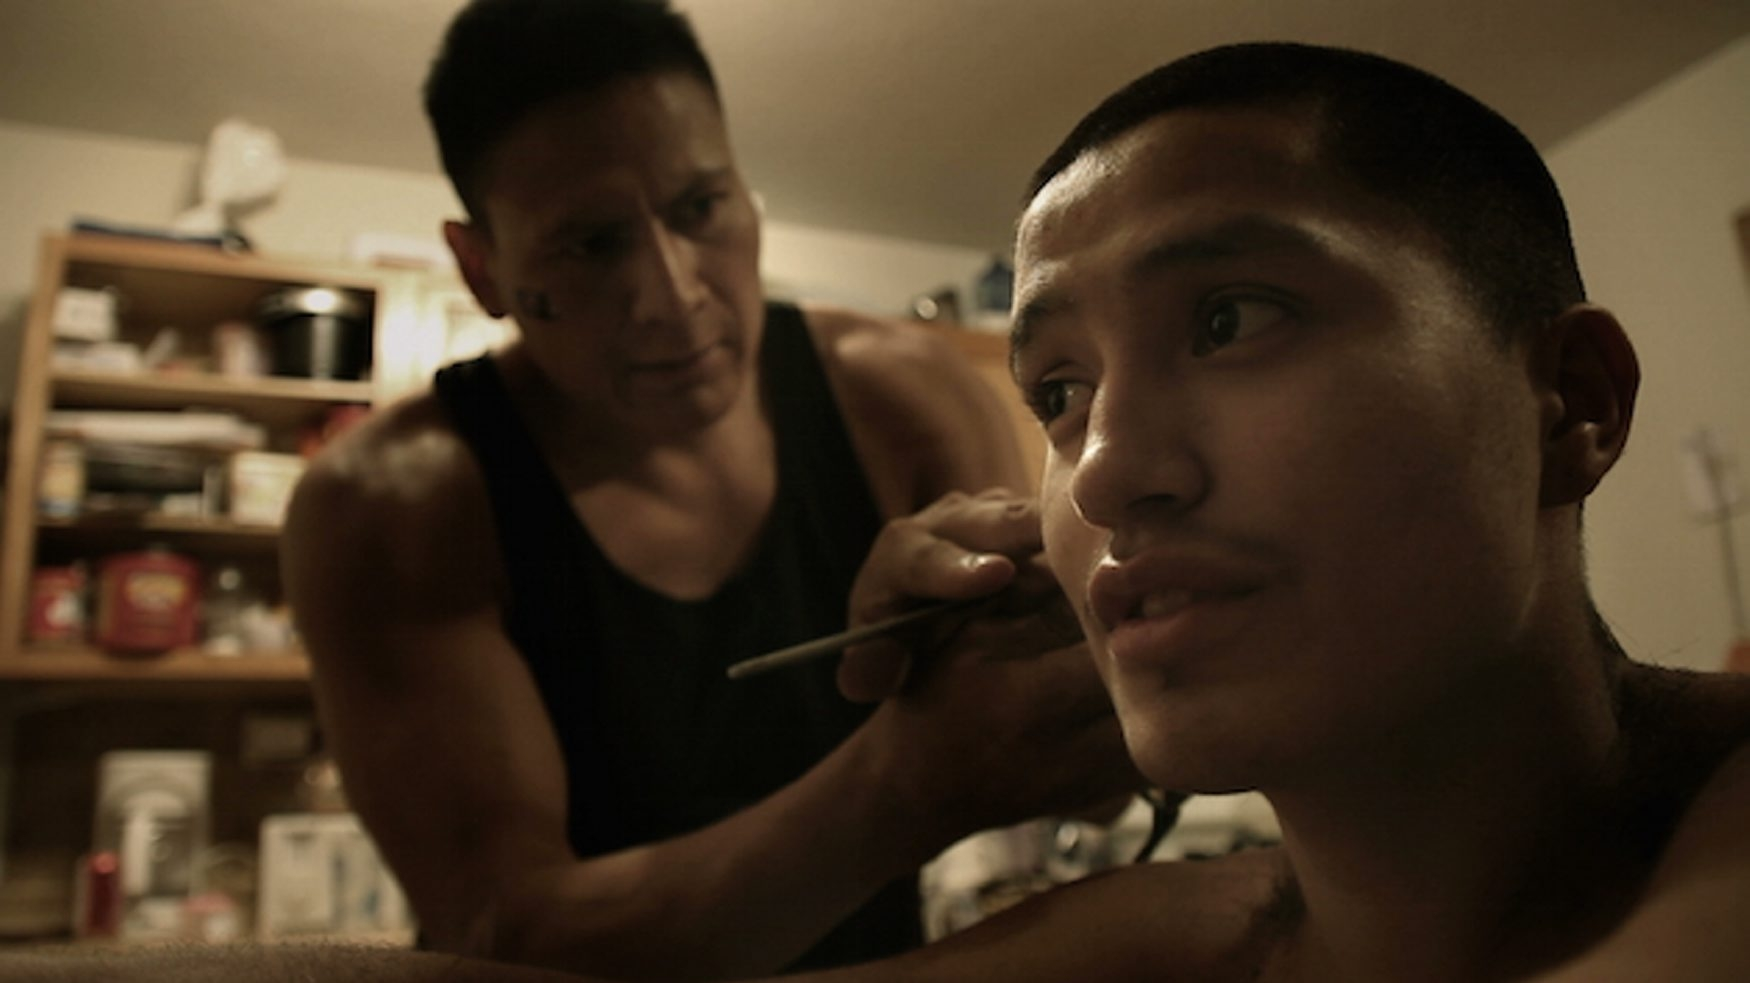 """The documentary """"The Seventh Fire,"""" about the gang crisis in a Native American community, will be shown at the Buffalo International Film Festival. Pictured is Native American gang leader Rob Brown, left, and his protege Kevin Fineday."""